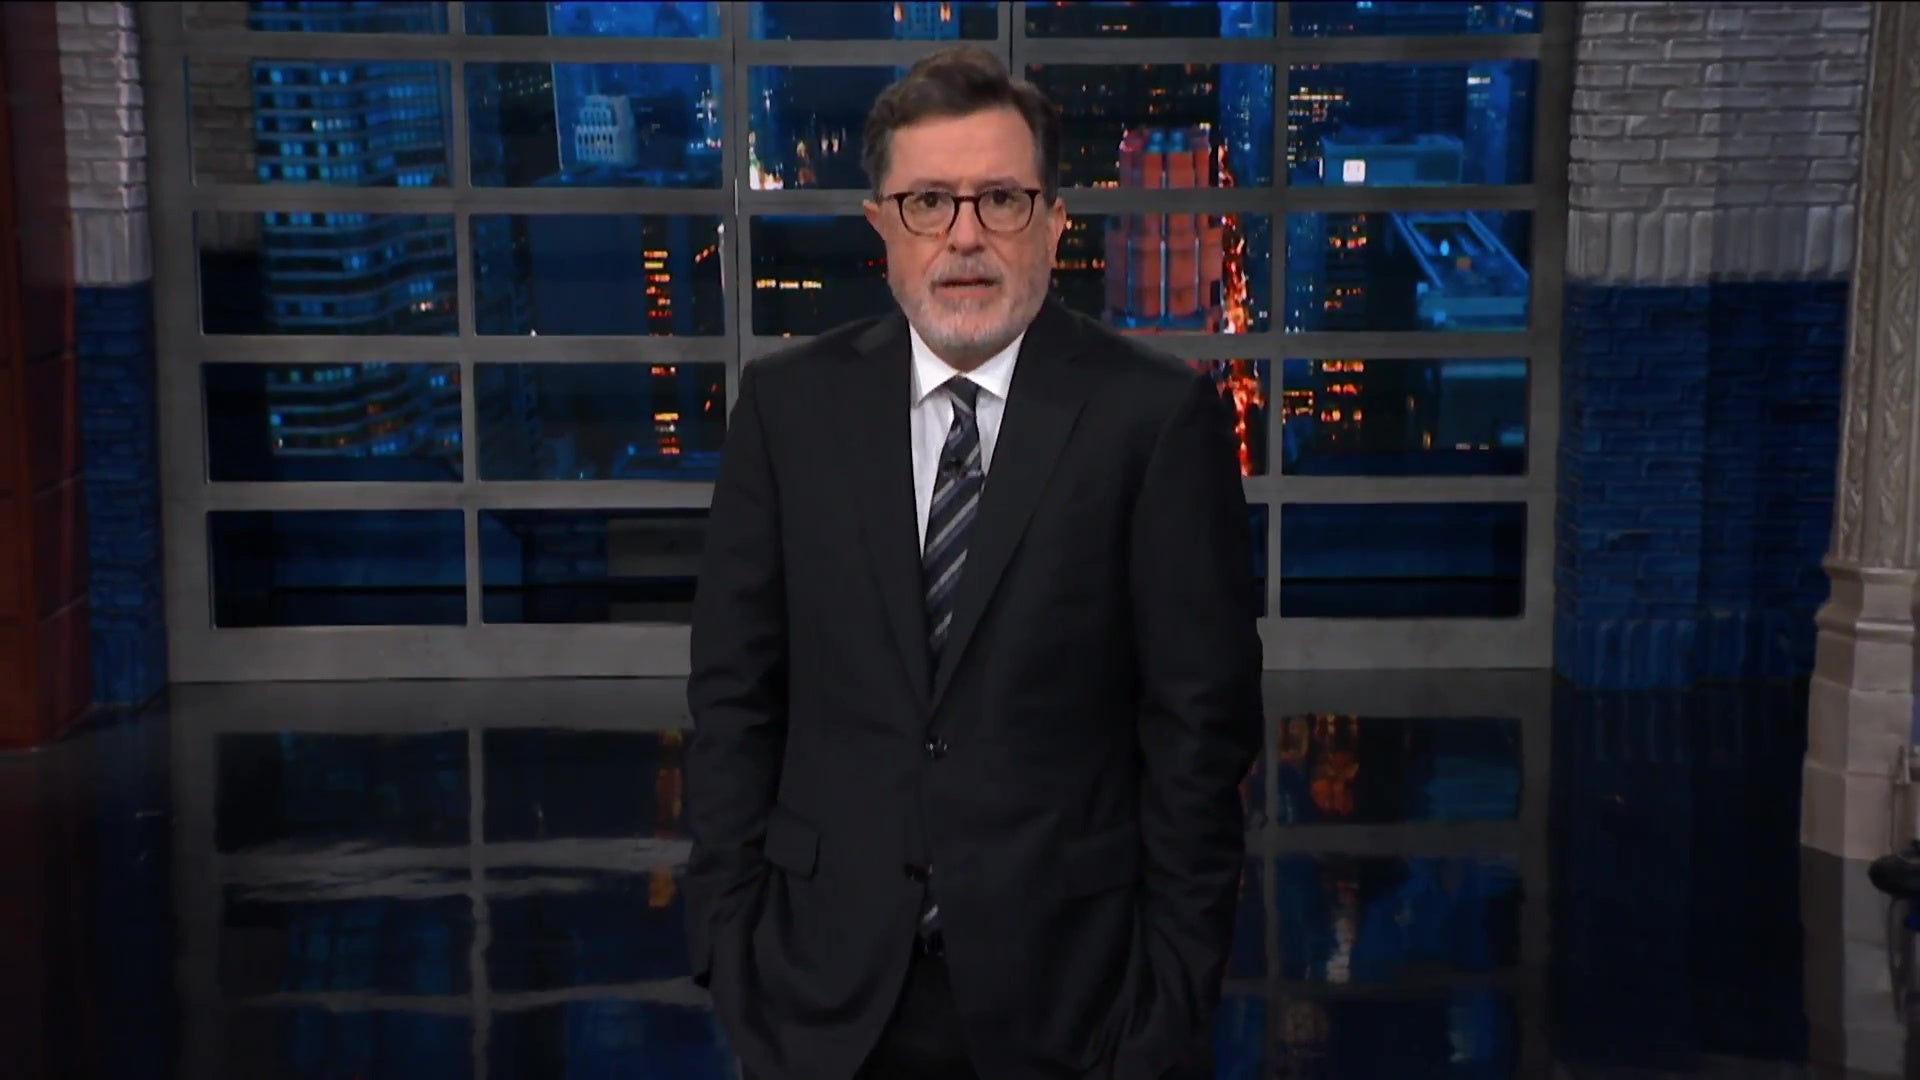 Host Stephen Colbert, delivering a monologue.